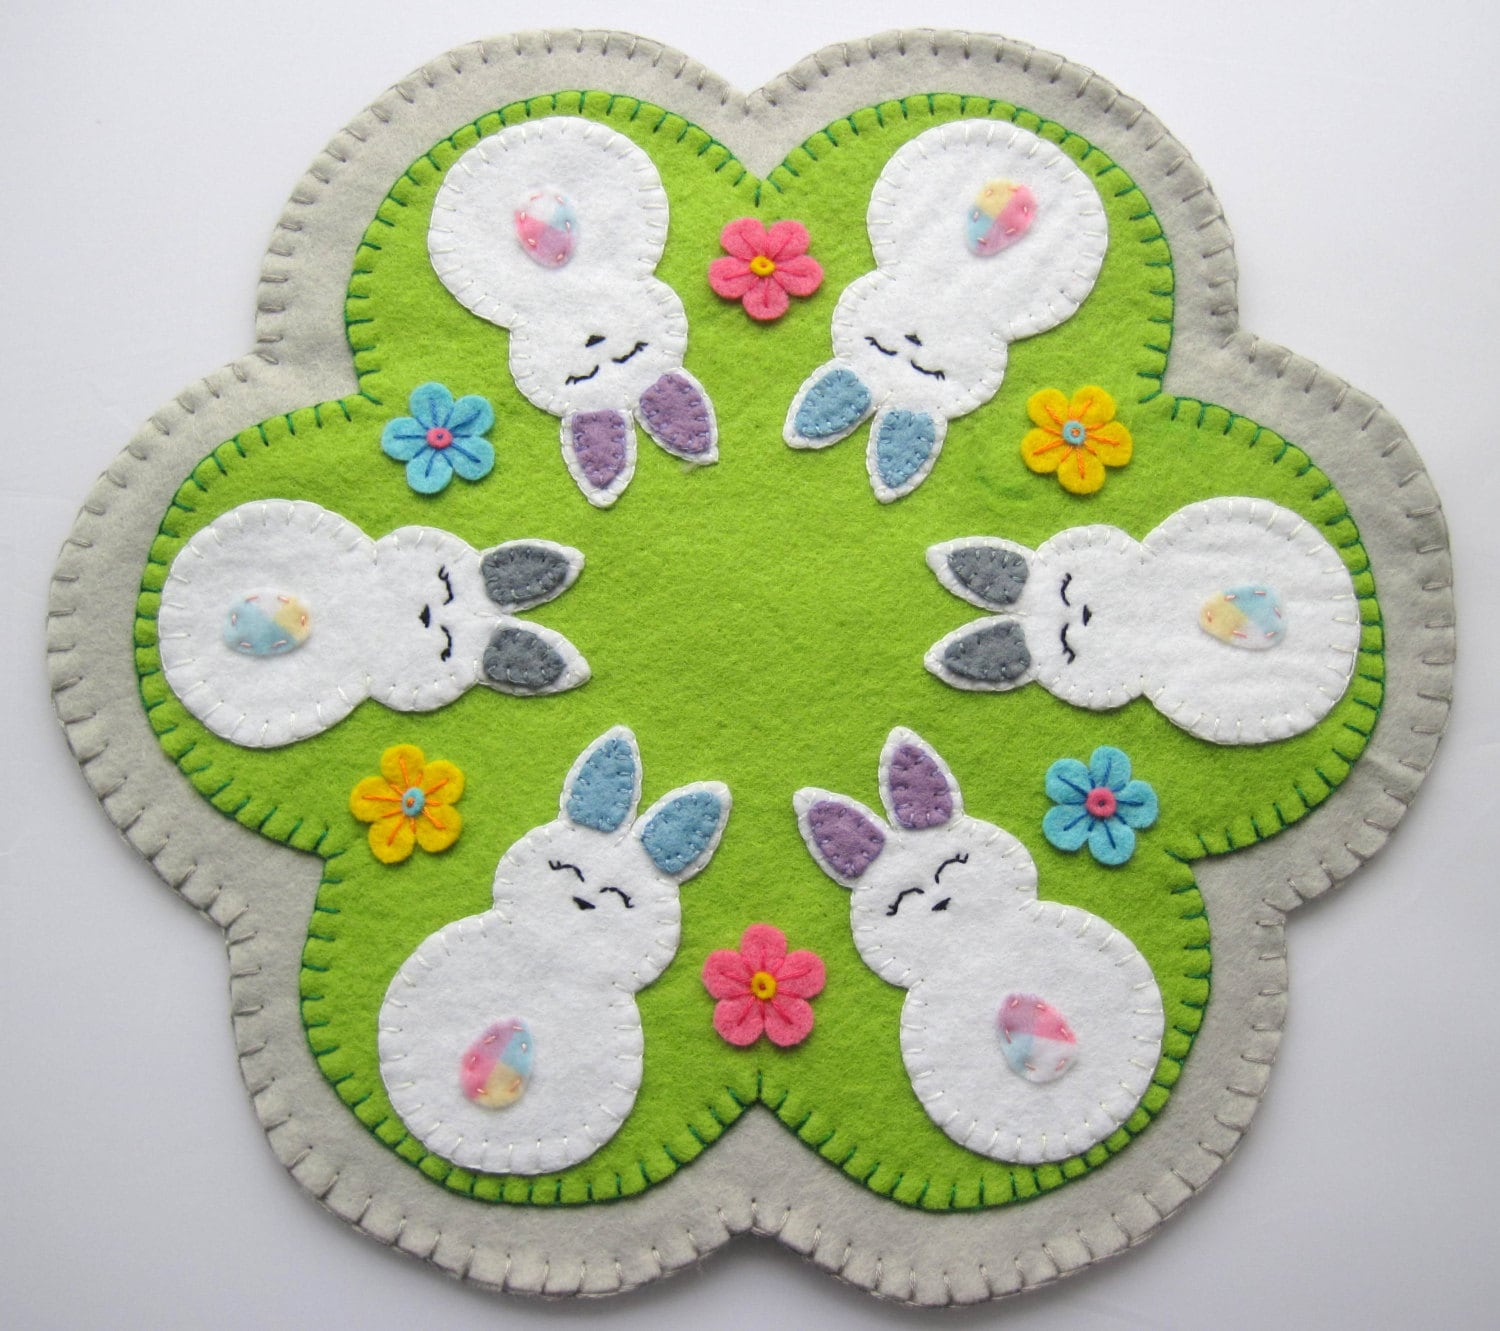 Easter Bunny Hand Embroidery Designs